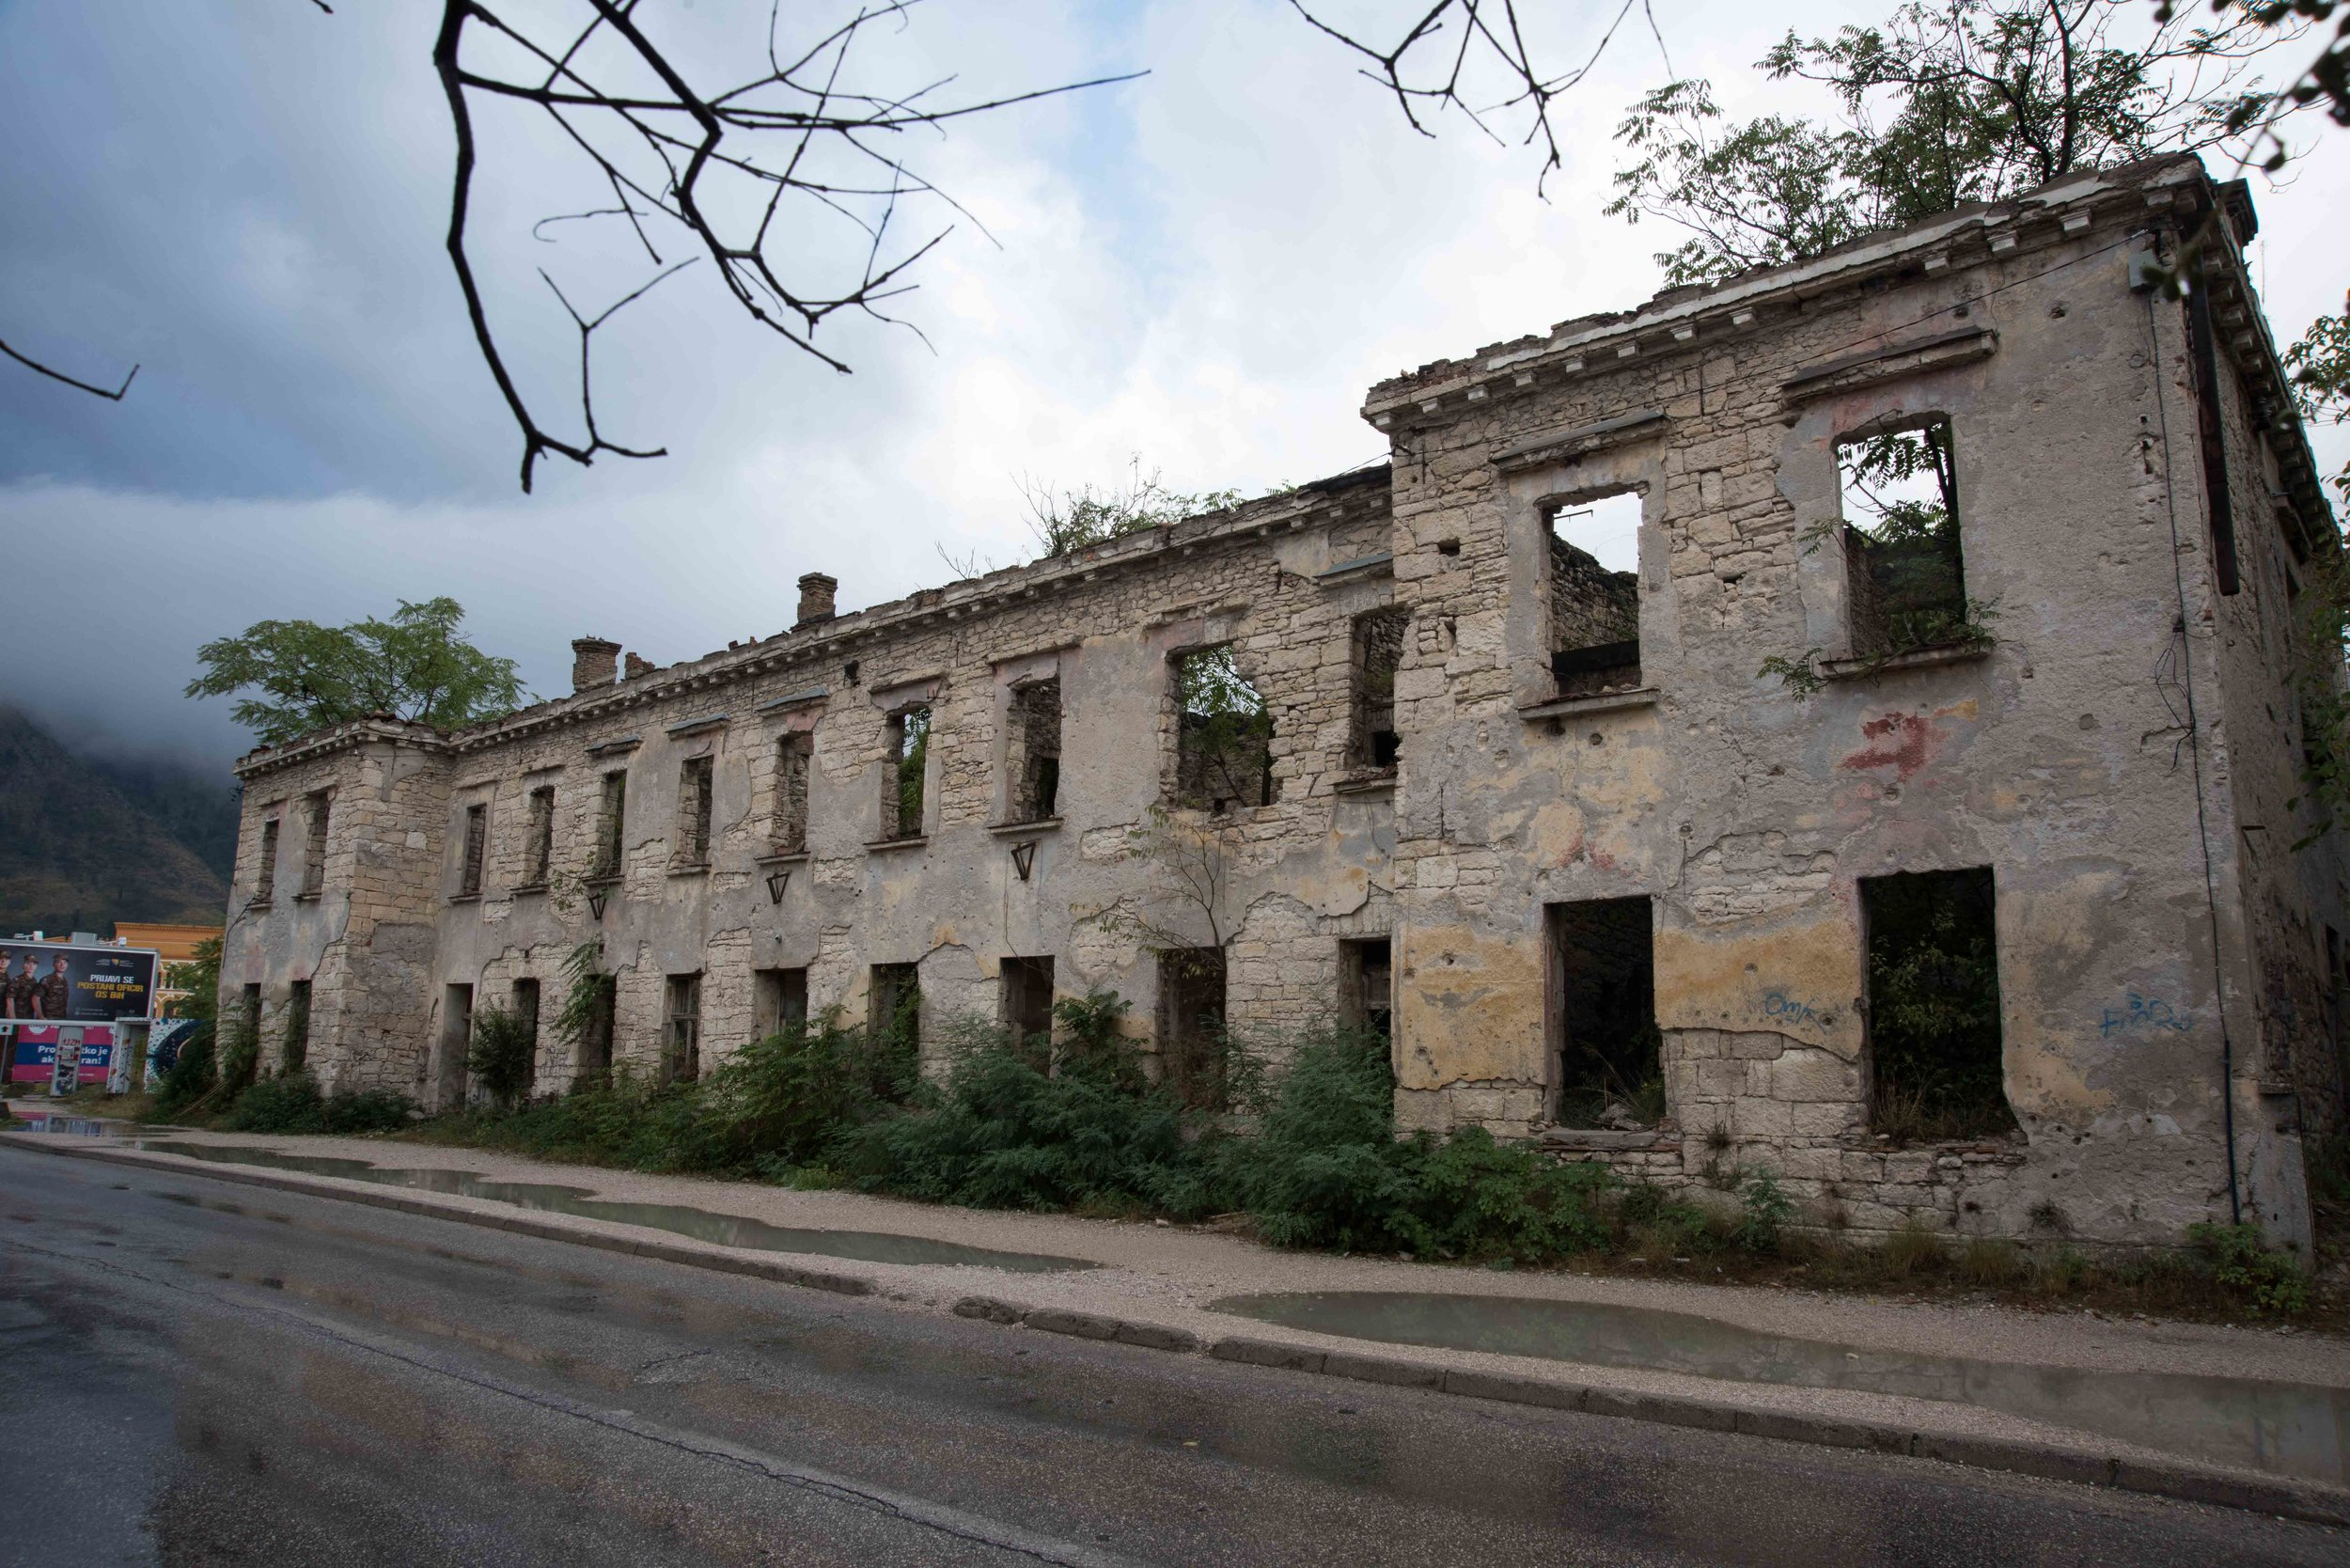 Damaged building, Mostar, Bosnia